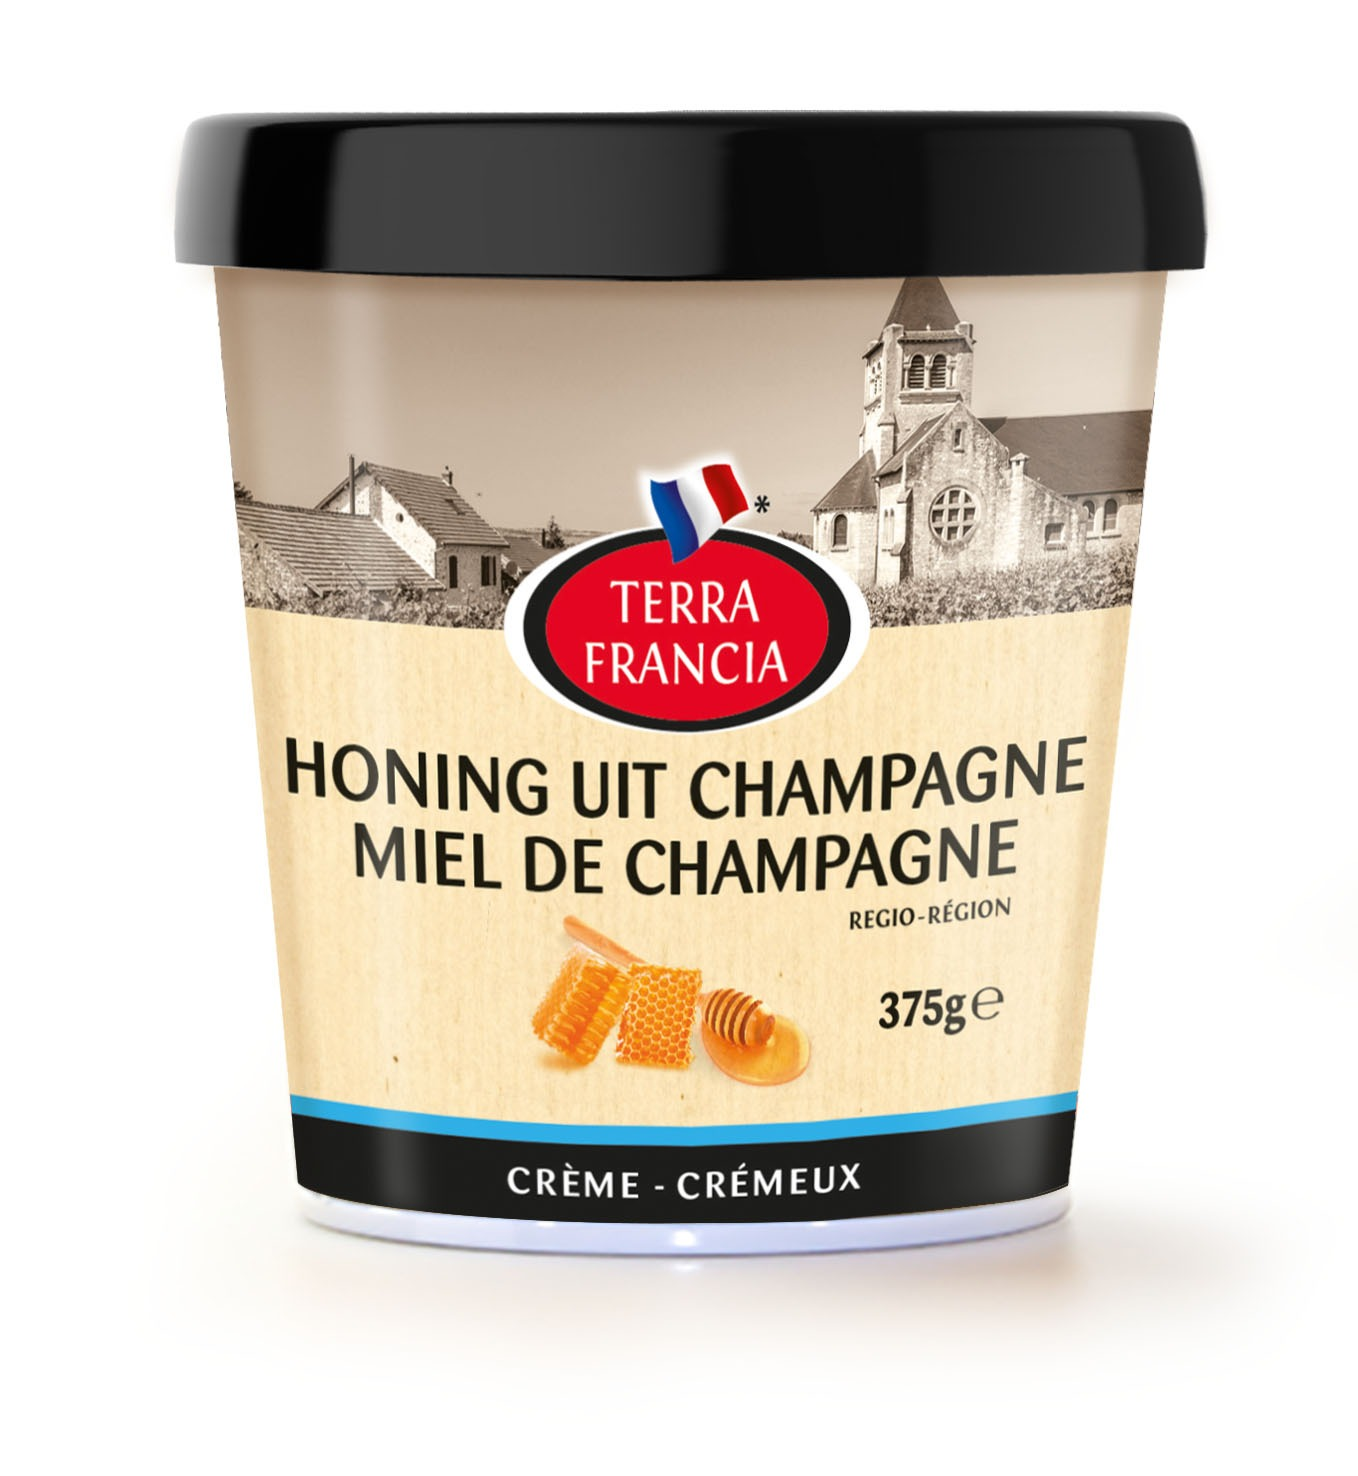 Honey from the Champagne region